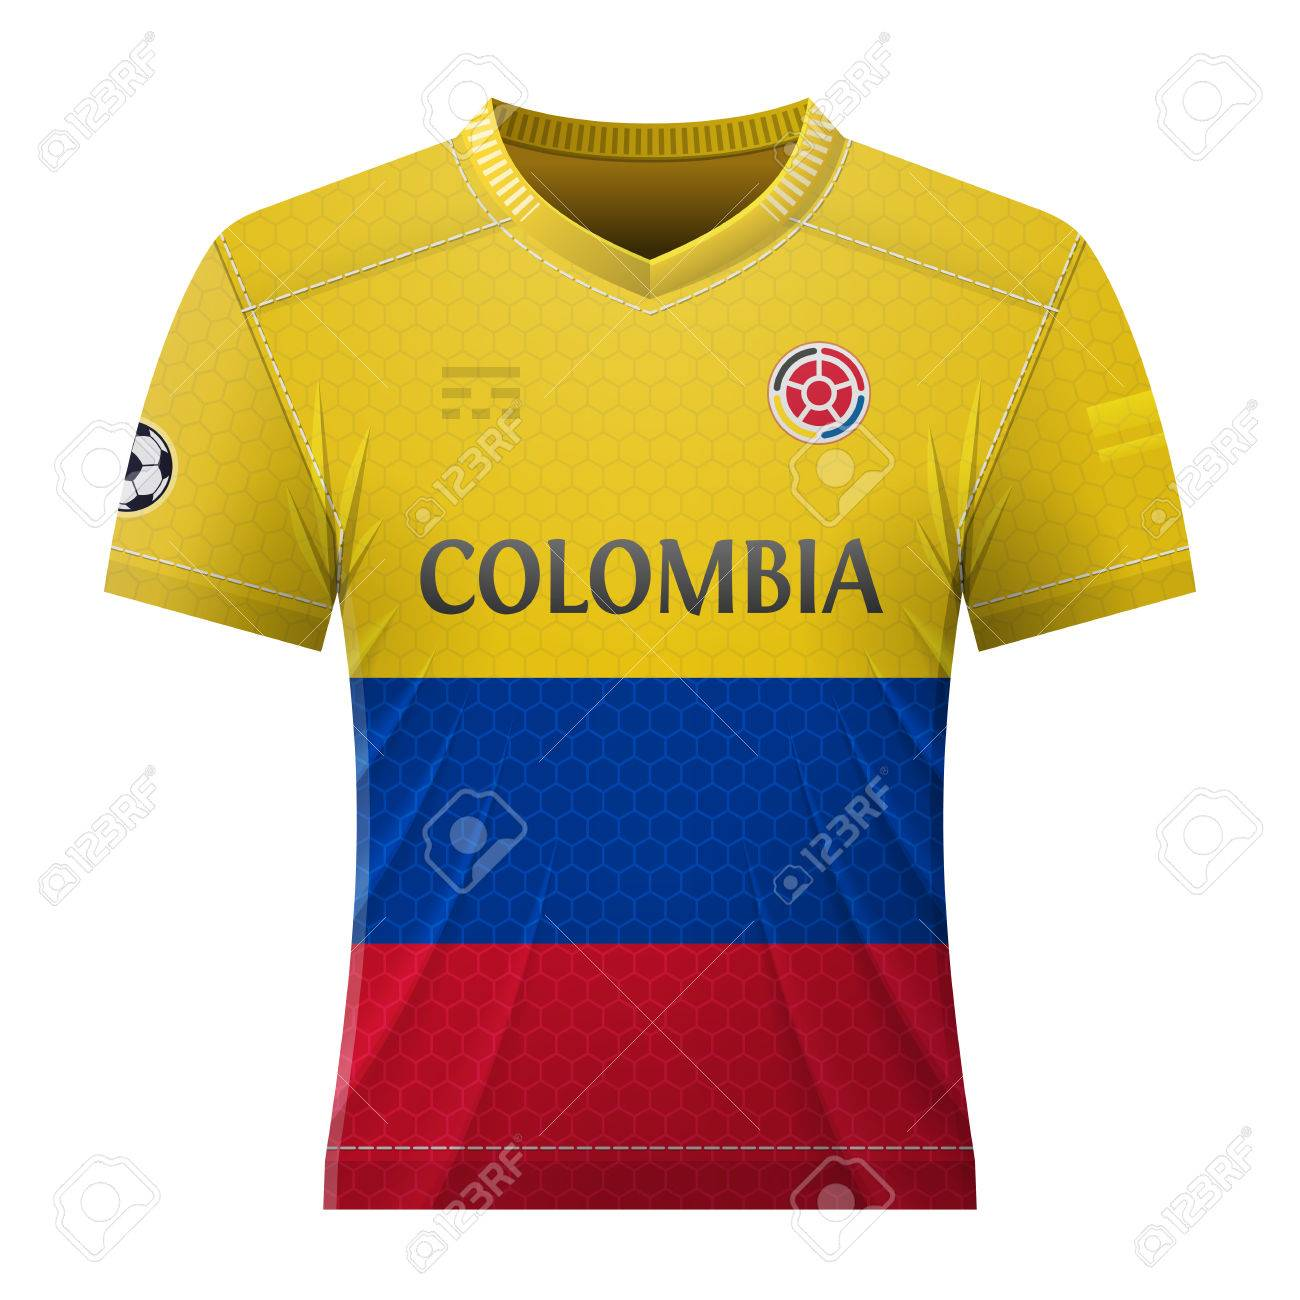 Soccer shirt in colors of colombian flag. National jersey for football team  of Colombia. 3a69d1337